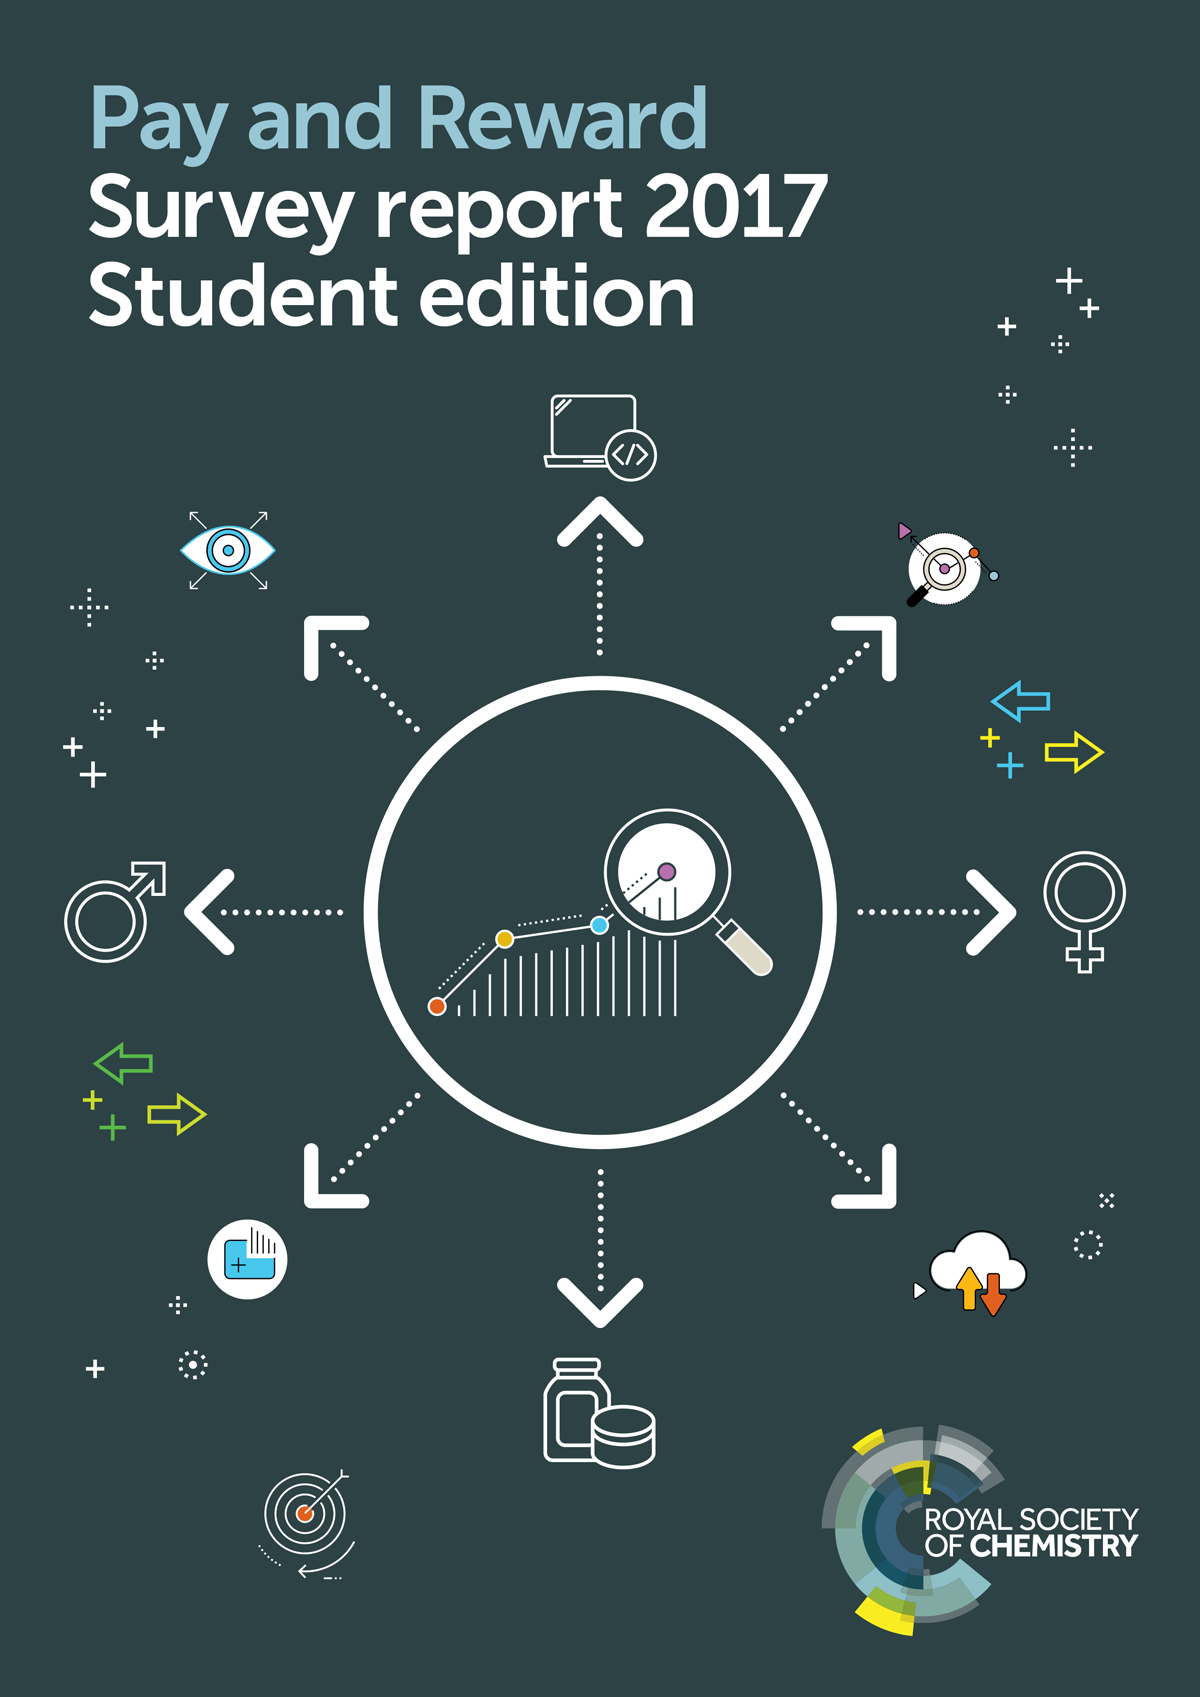 Pay and Reward Survey report 2017 Student edition